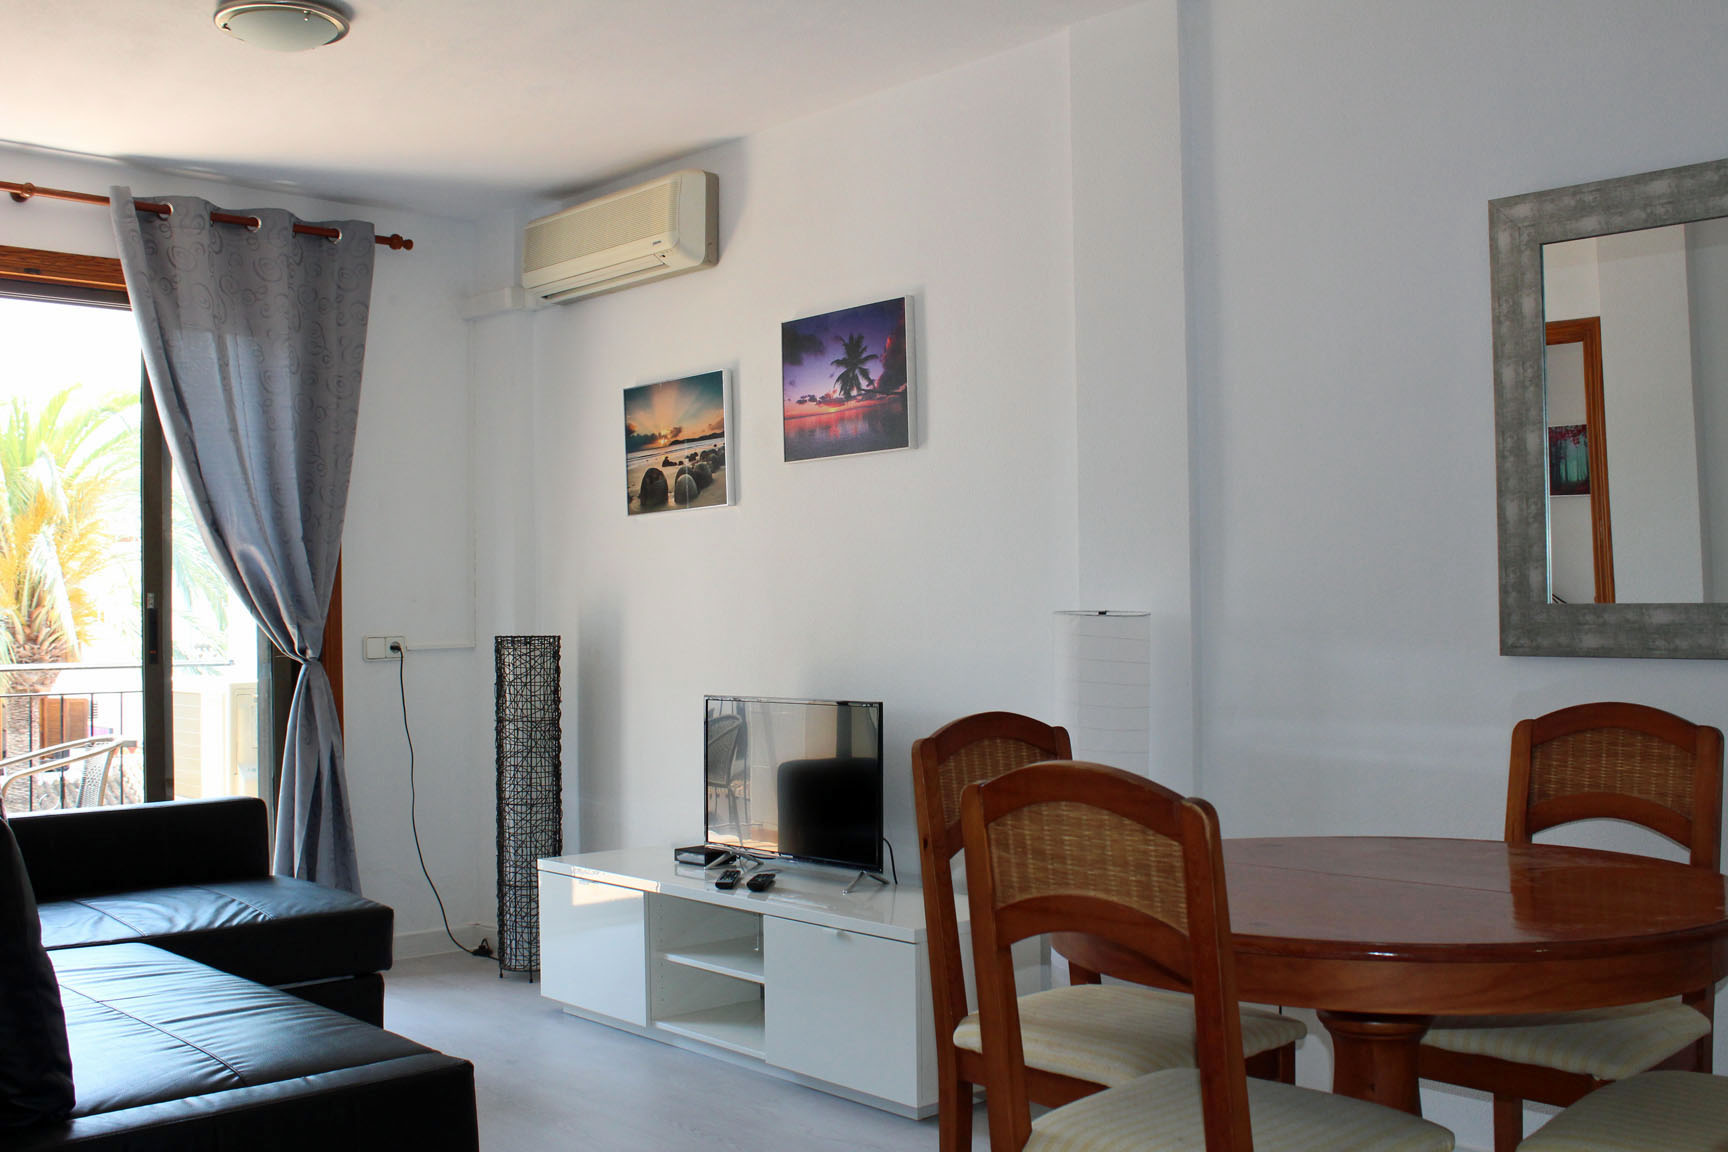 ITSH Property Newly refurbed living room and dining area 4